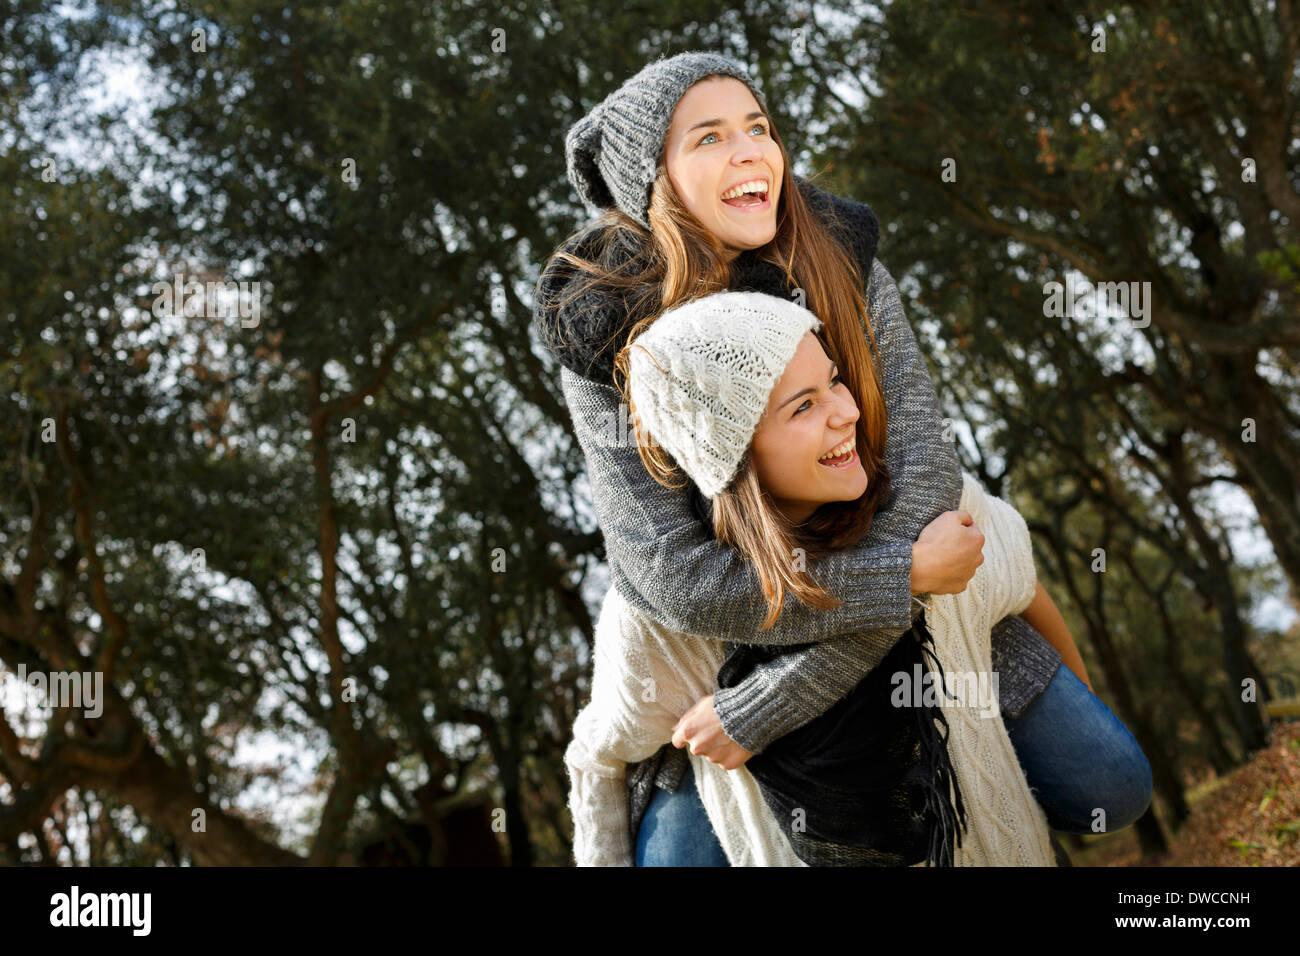 Sœurs piggy back riding in forest Photo Stock